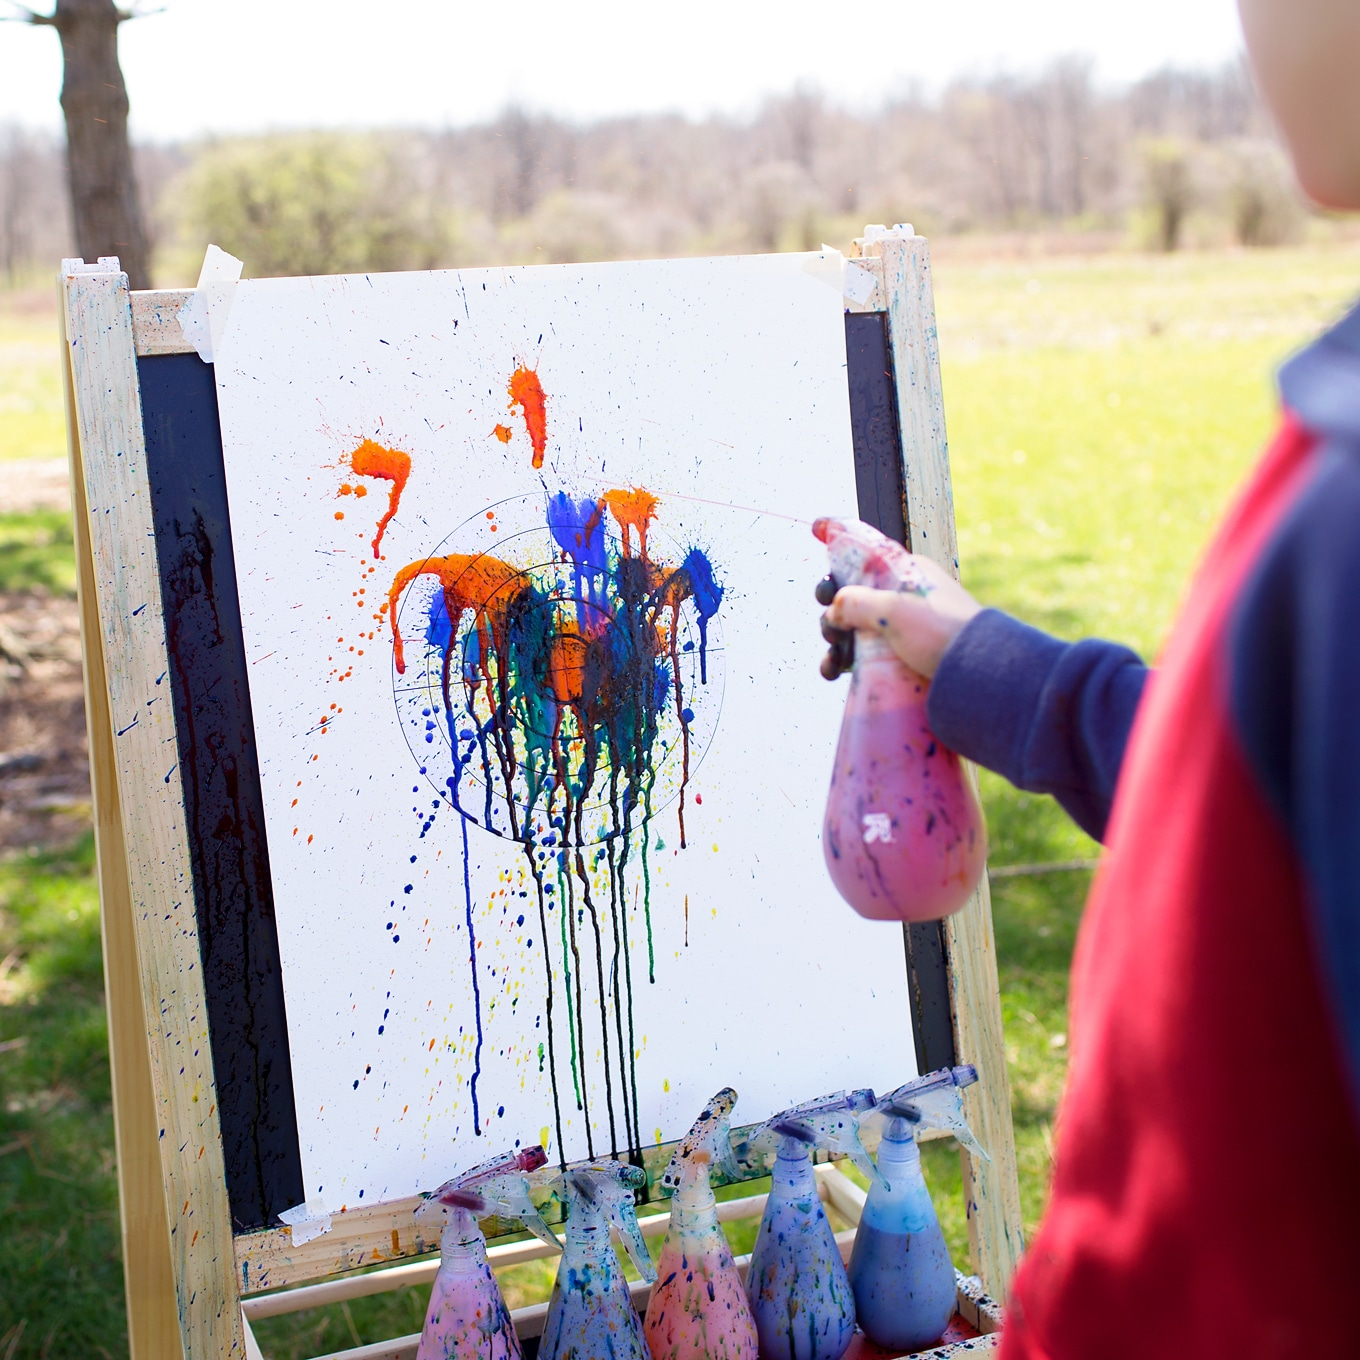 Squirt Painting Targets